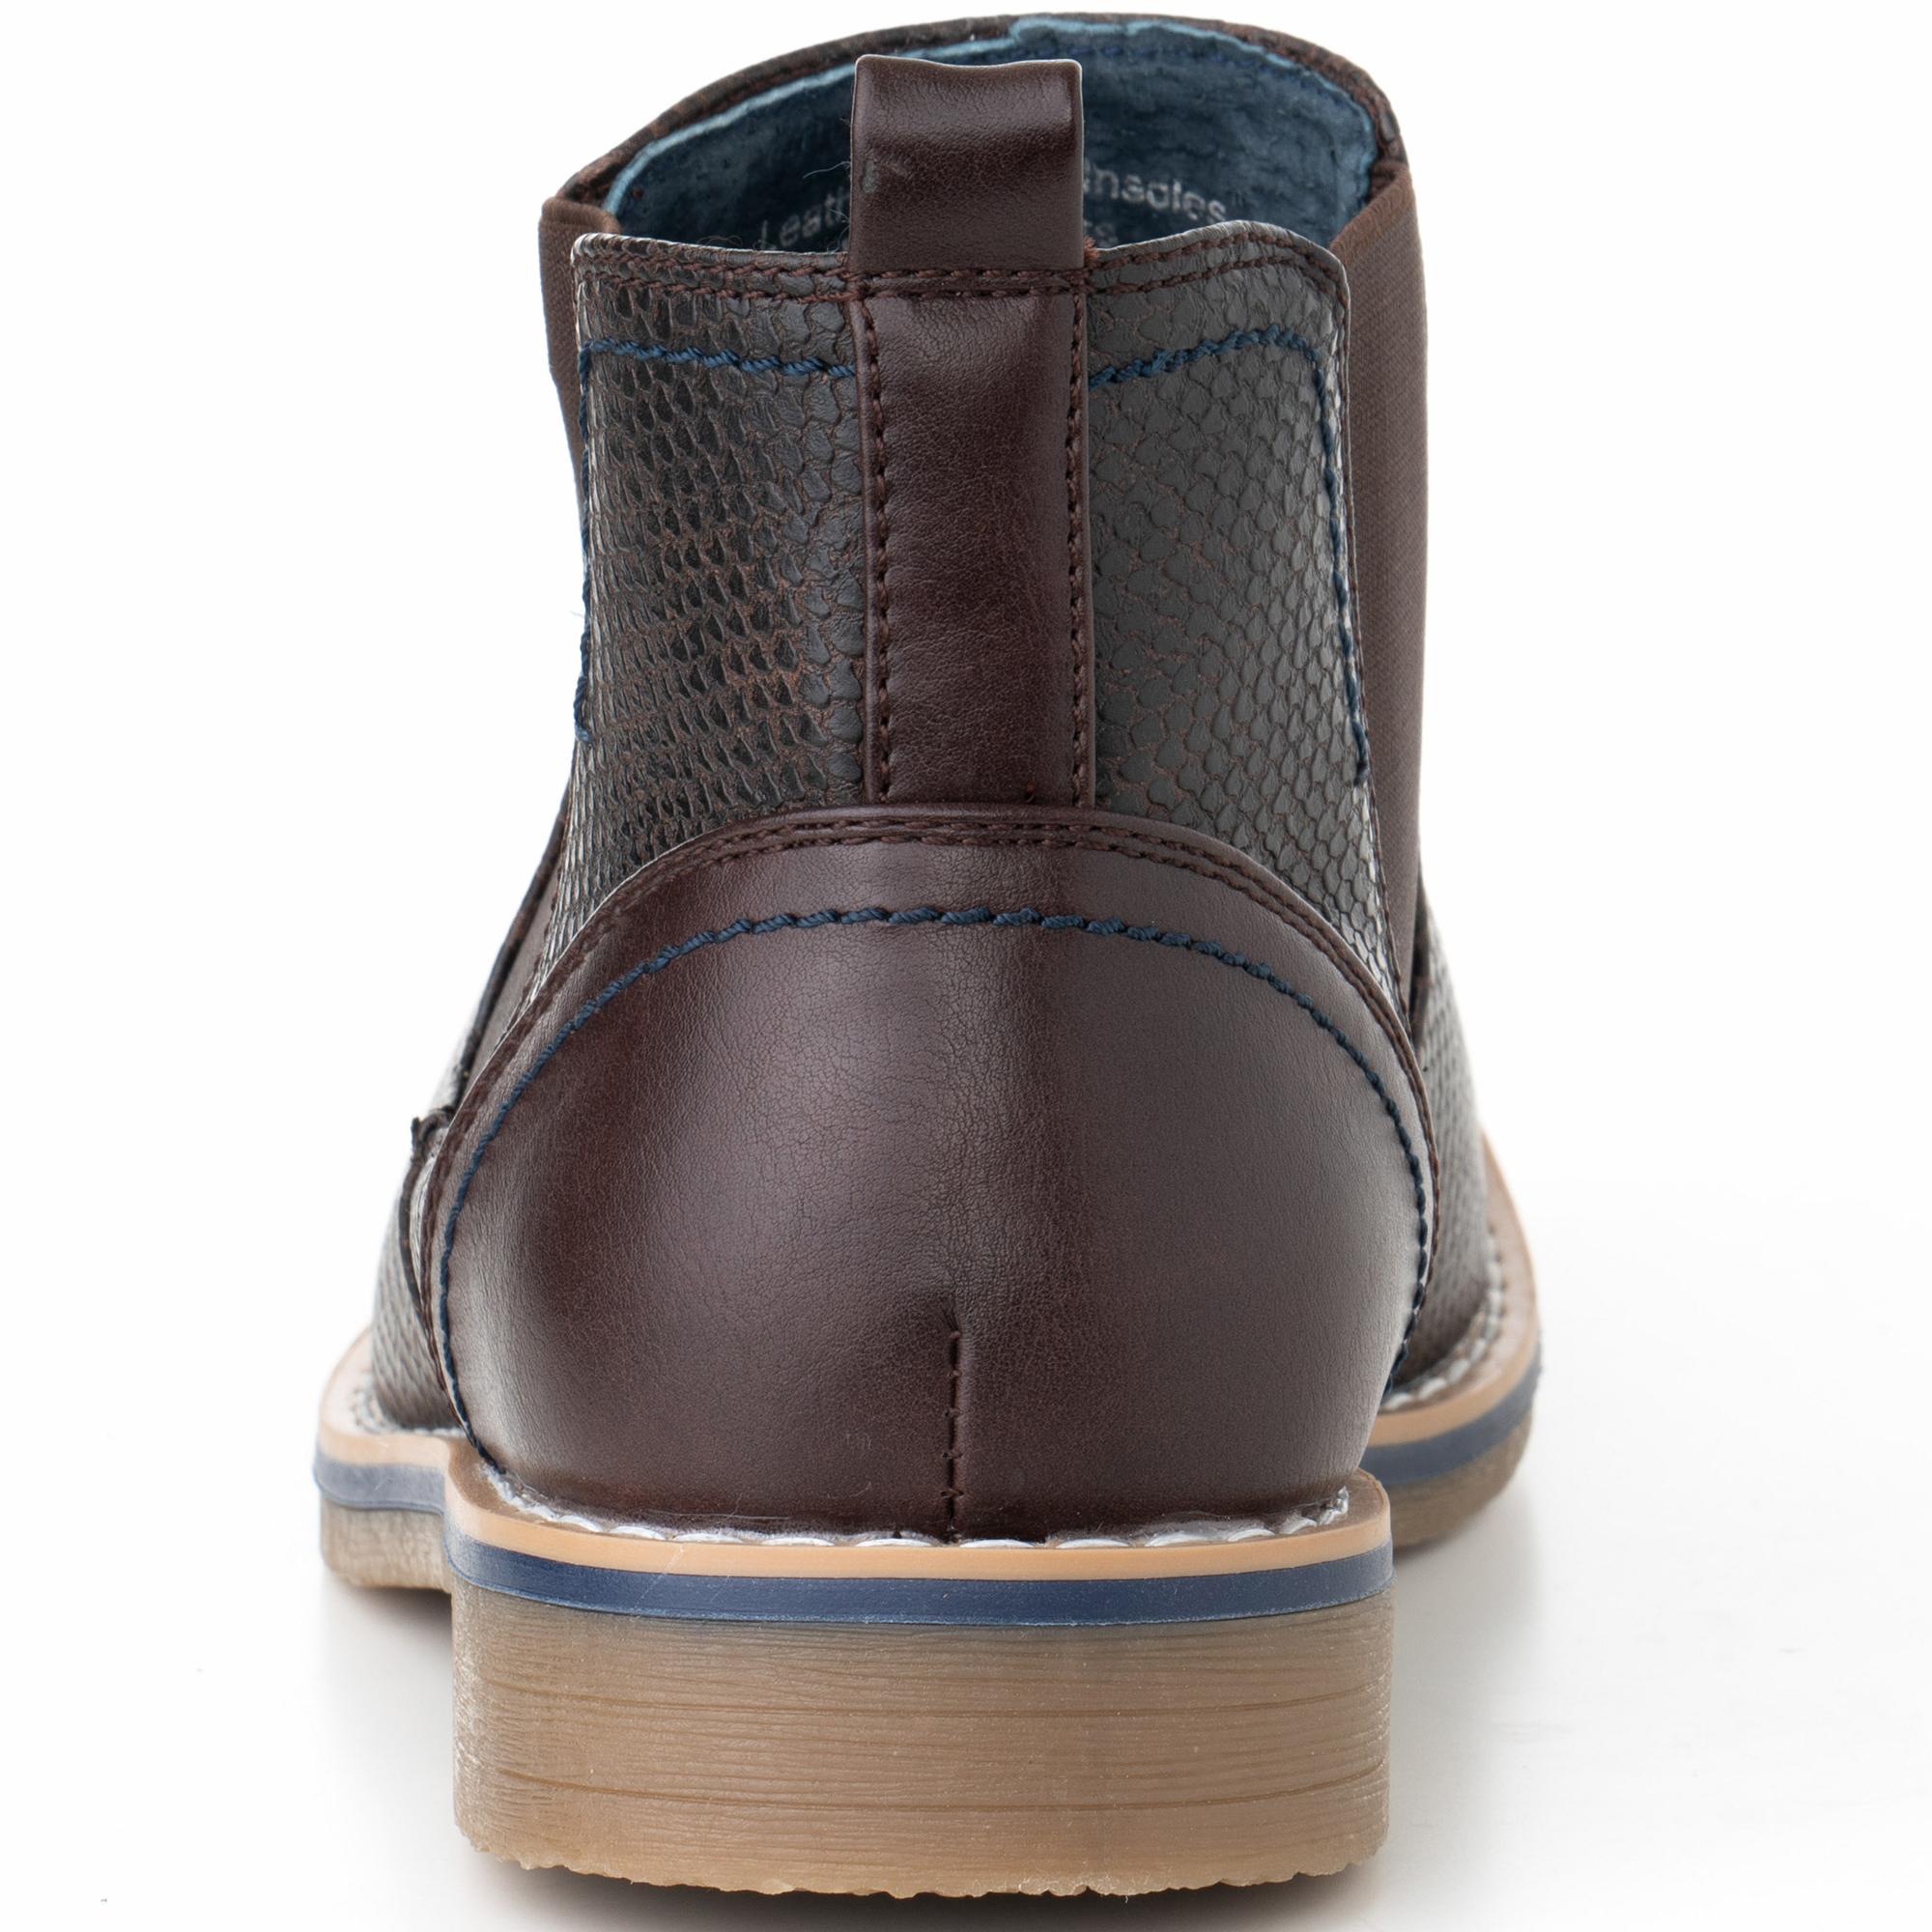 Alpine-Swiss-Mens-Nash-Chelsea-Boots-Snakeskin-Ankle-Boot-Genuine-Leather-Lined miniature 22